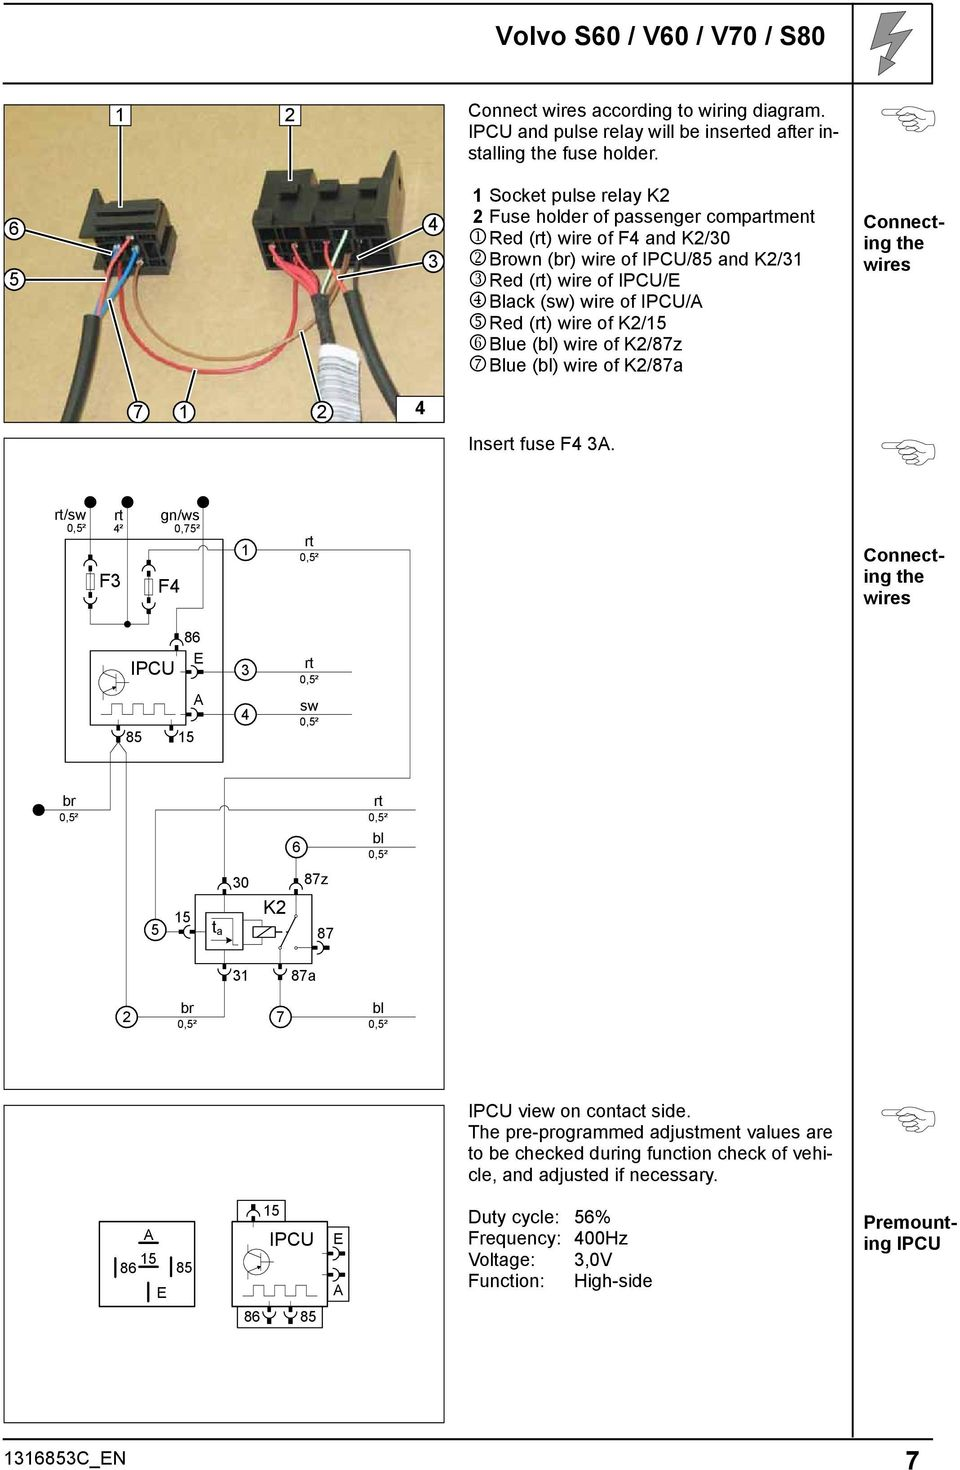 Always Follow All Webasto Installation And Repair Instructions Volvo 770 Fuse Box Diagram Blue Bl Wire Of K 87z